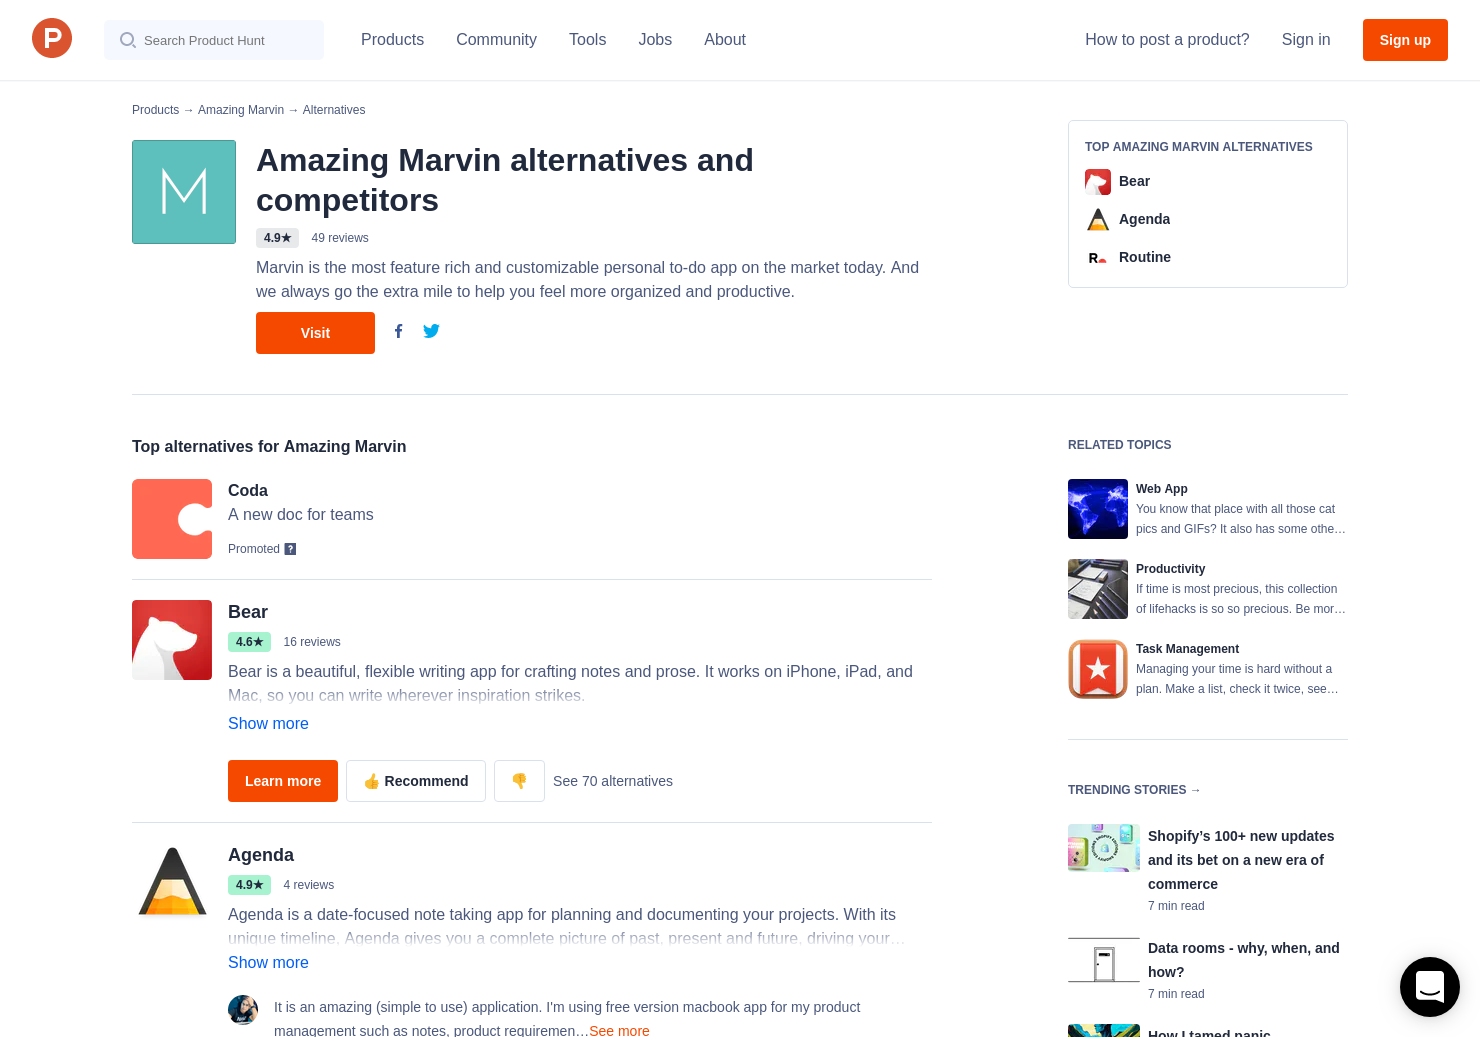 35 Alternatives to Amazing Marvin | Product Hunt